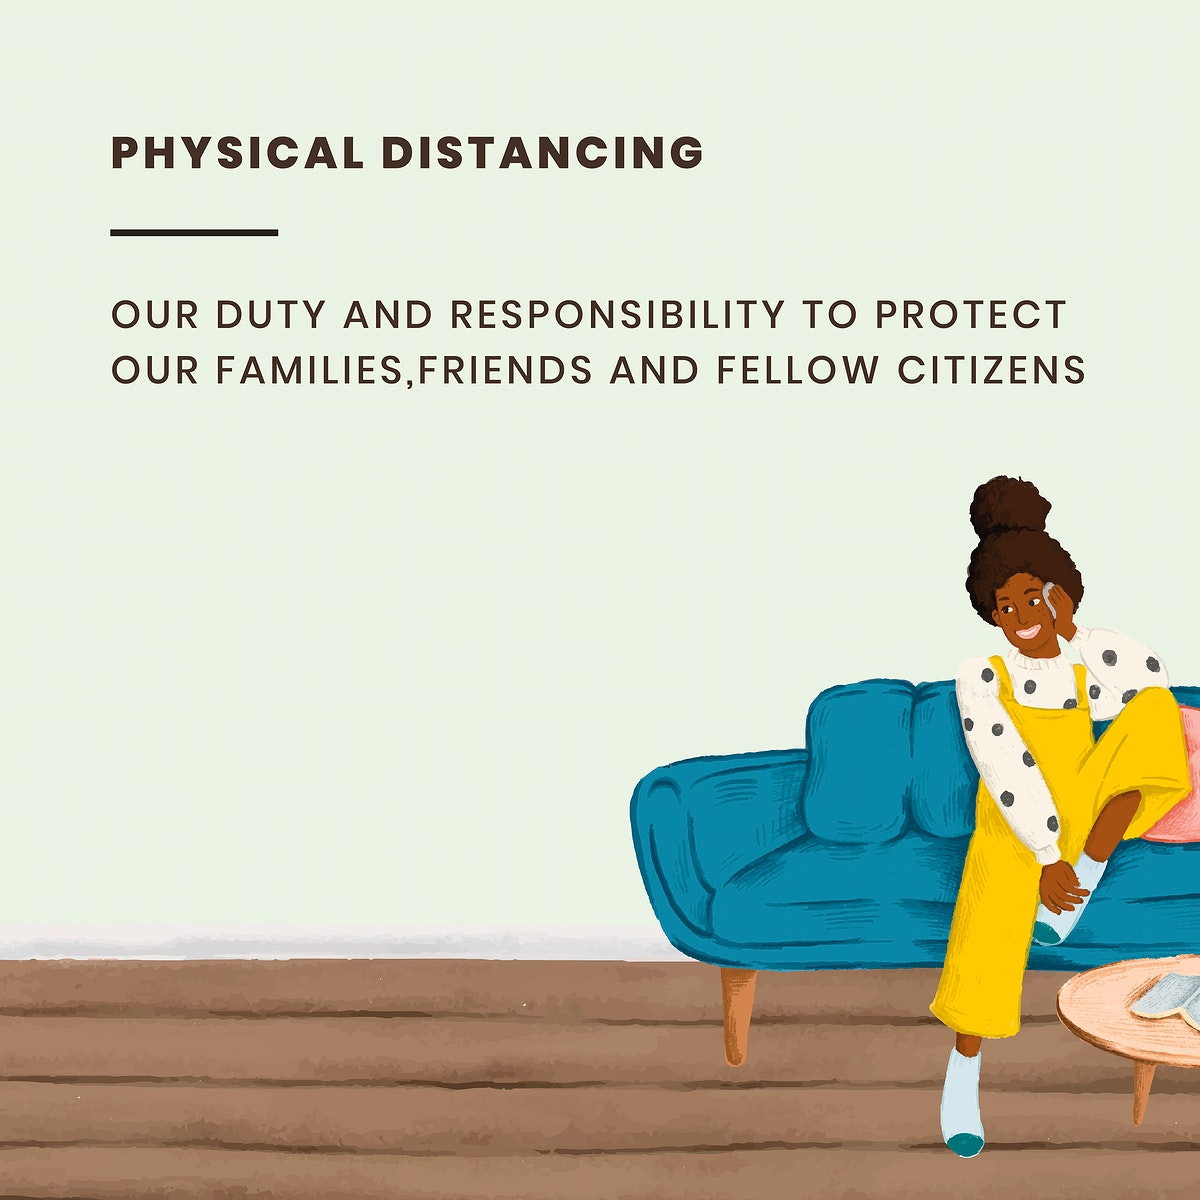 Practice social distancing to prevent covid-19. This image is part our collaboration with the Behavioural Sciences team at…